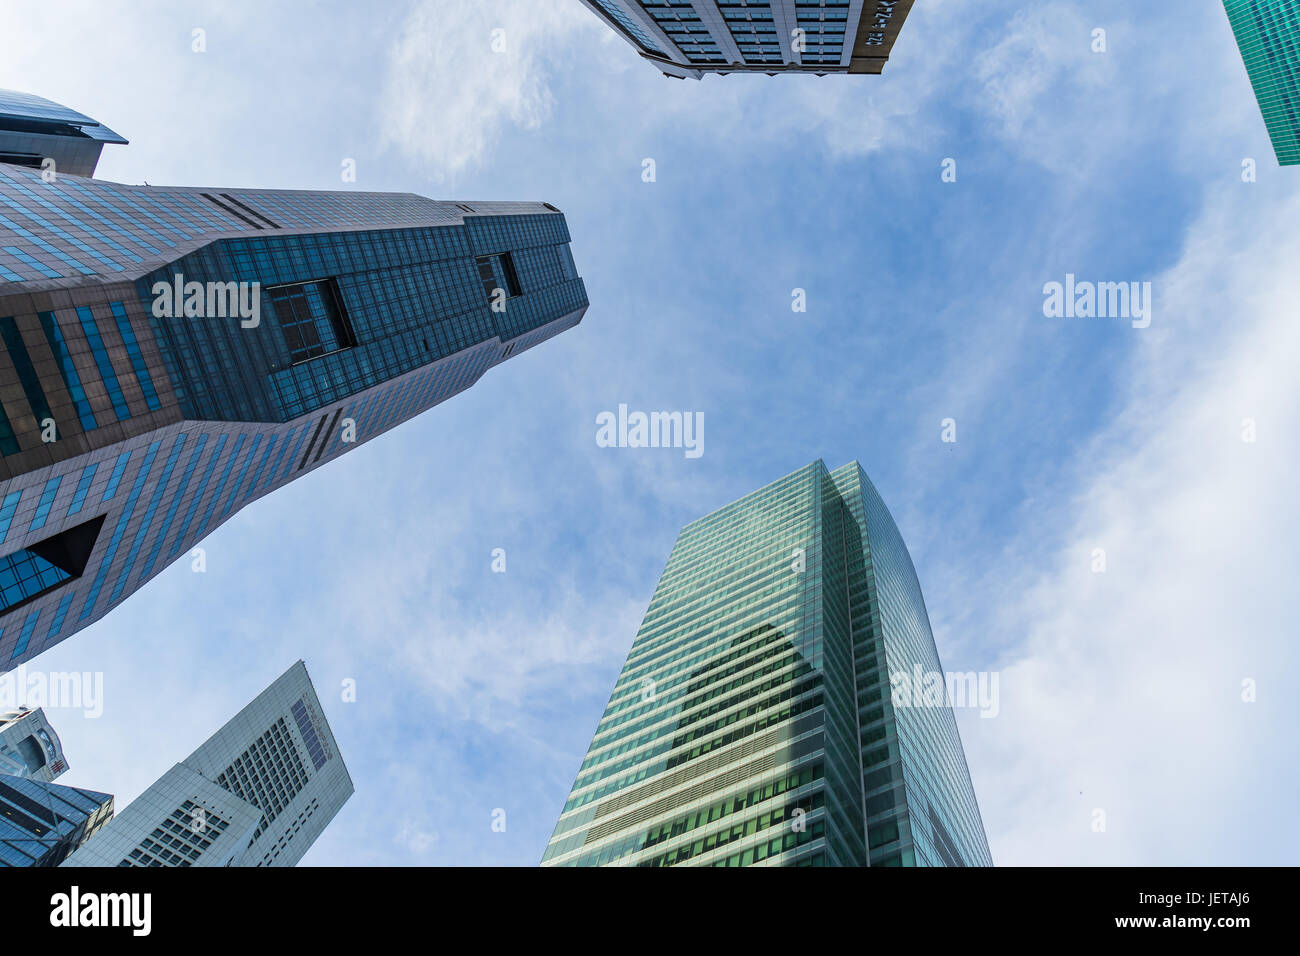 Singapore - June 17, 2017: Bottom view of modern skyscrapers in business district area against blue sky, Skyscraper - Stock Image